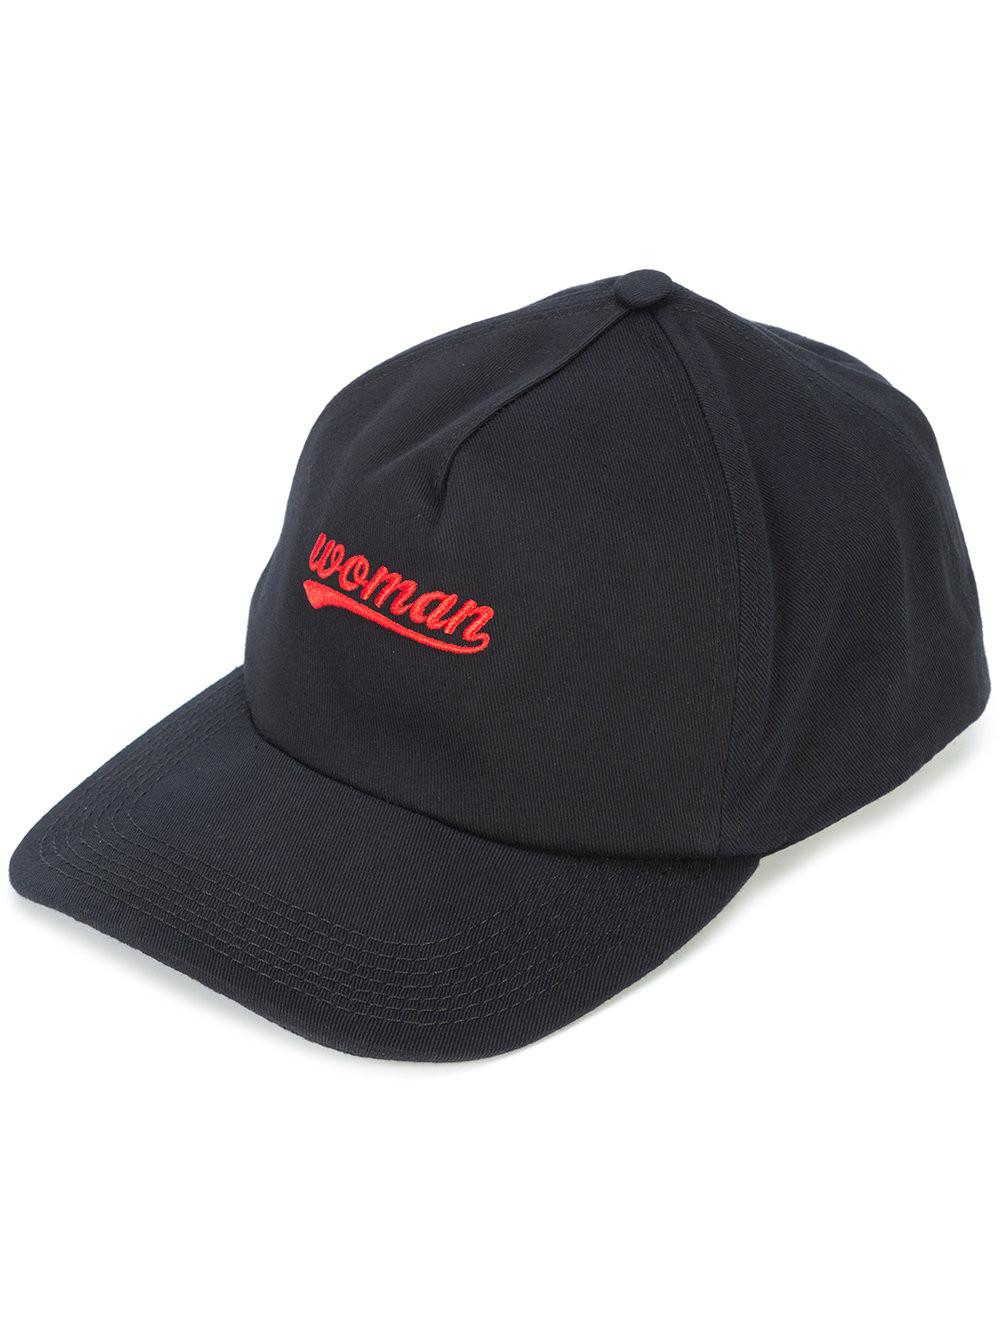 Woman Logo Cap in Black Off-white xKpYBGYB3r